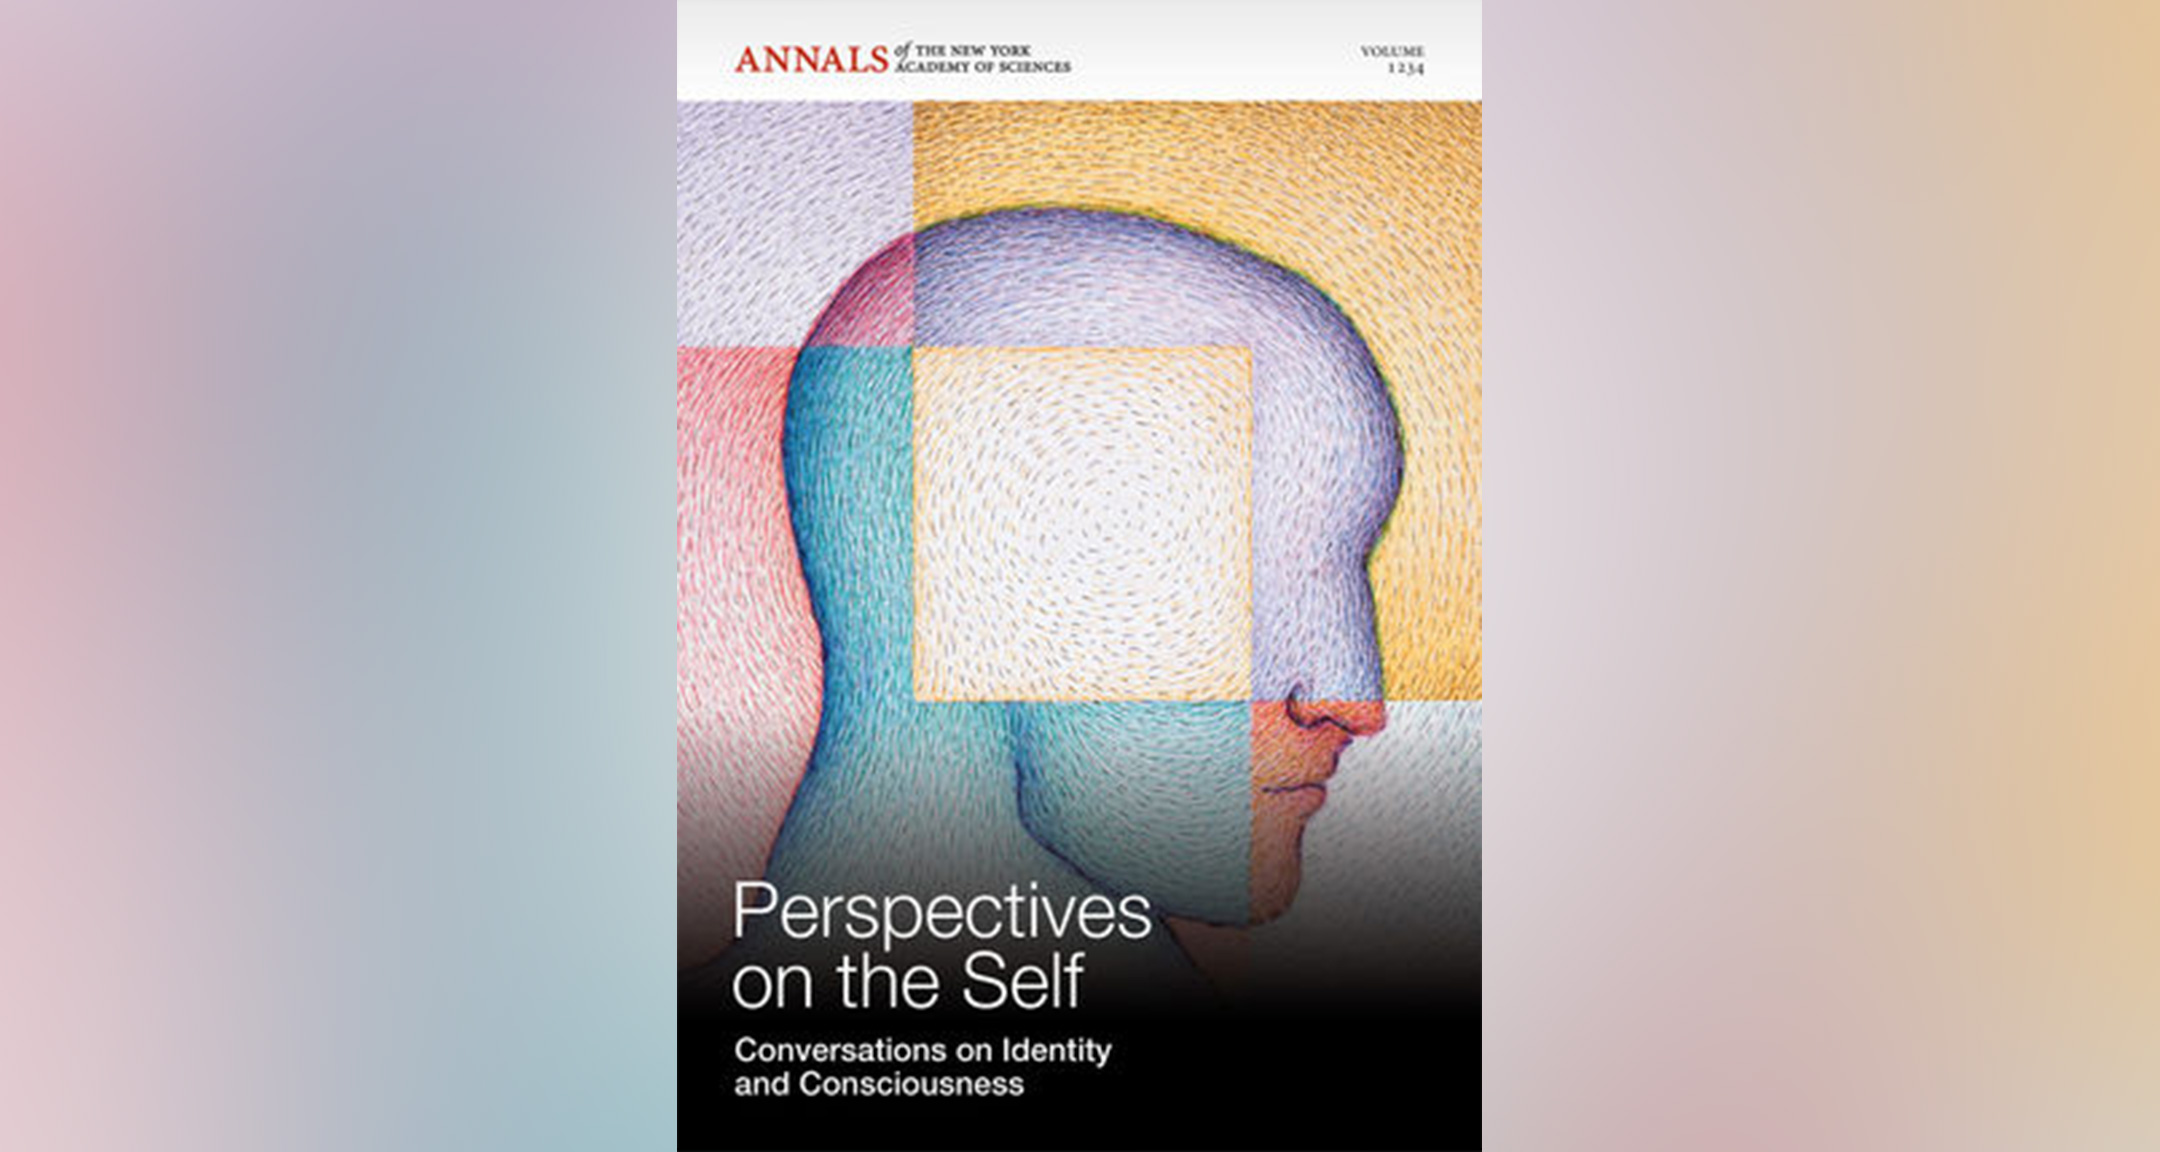 Self knowledge and the practice of ethics